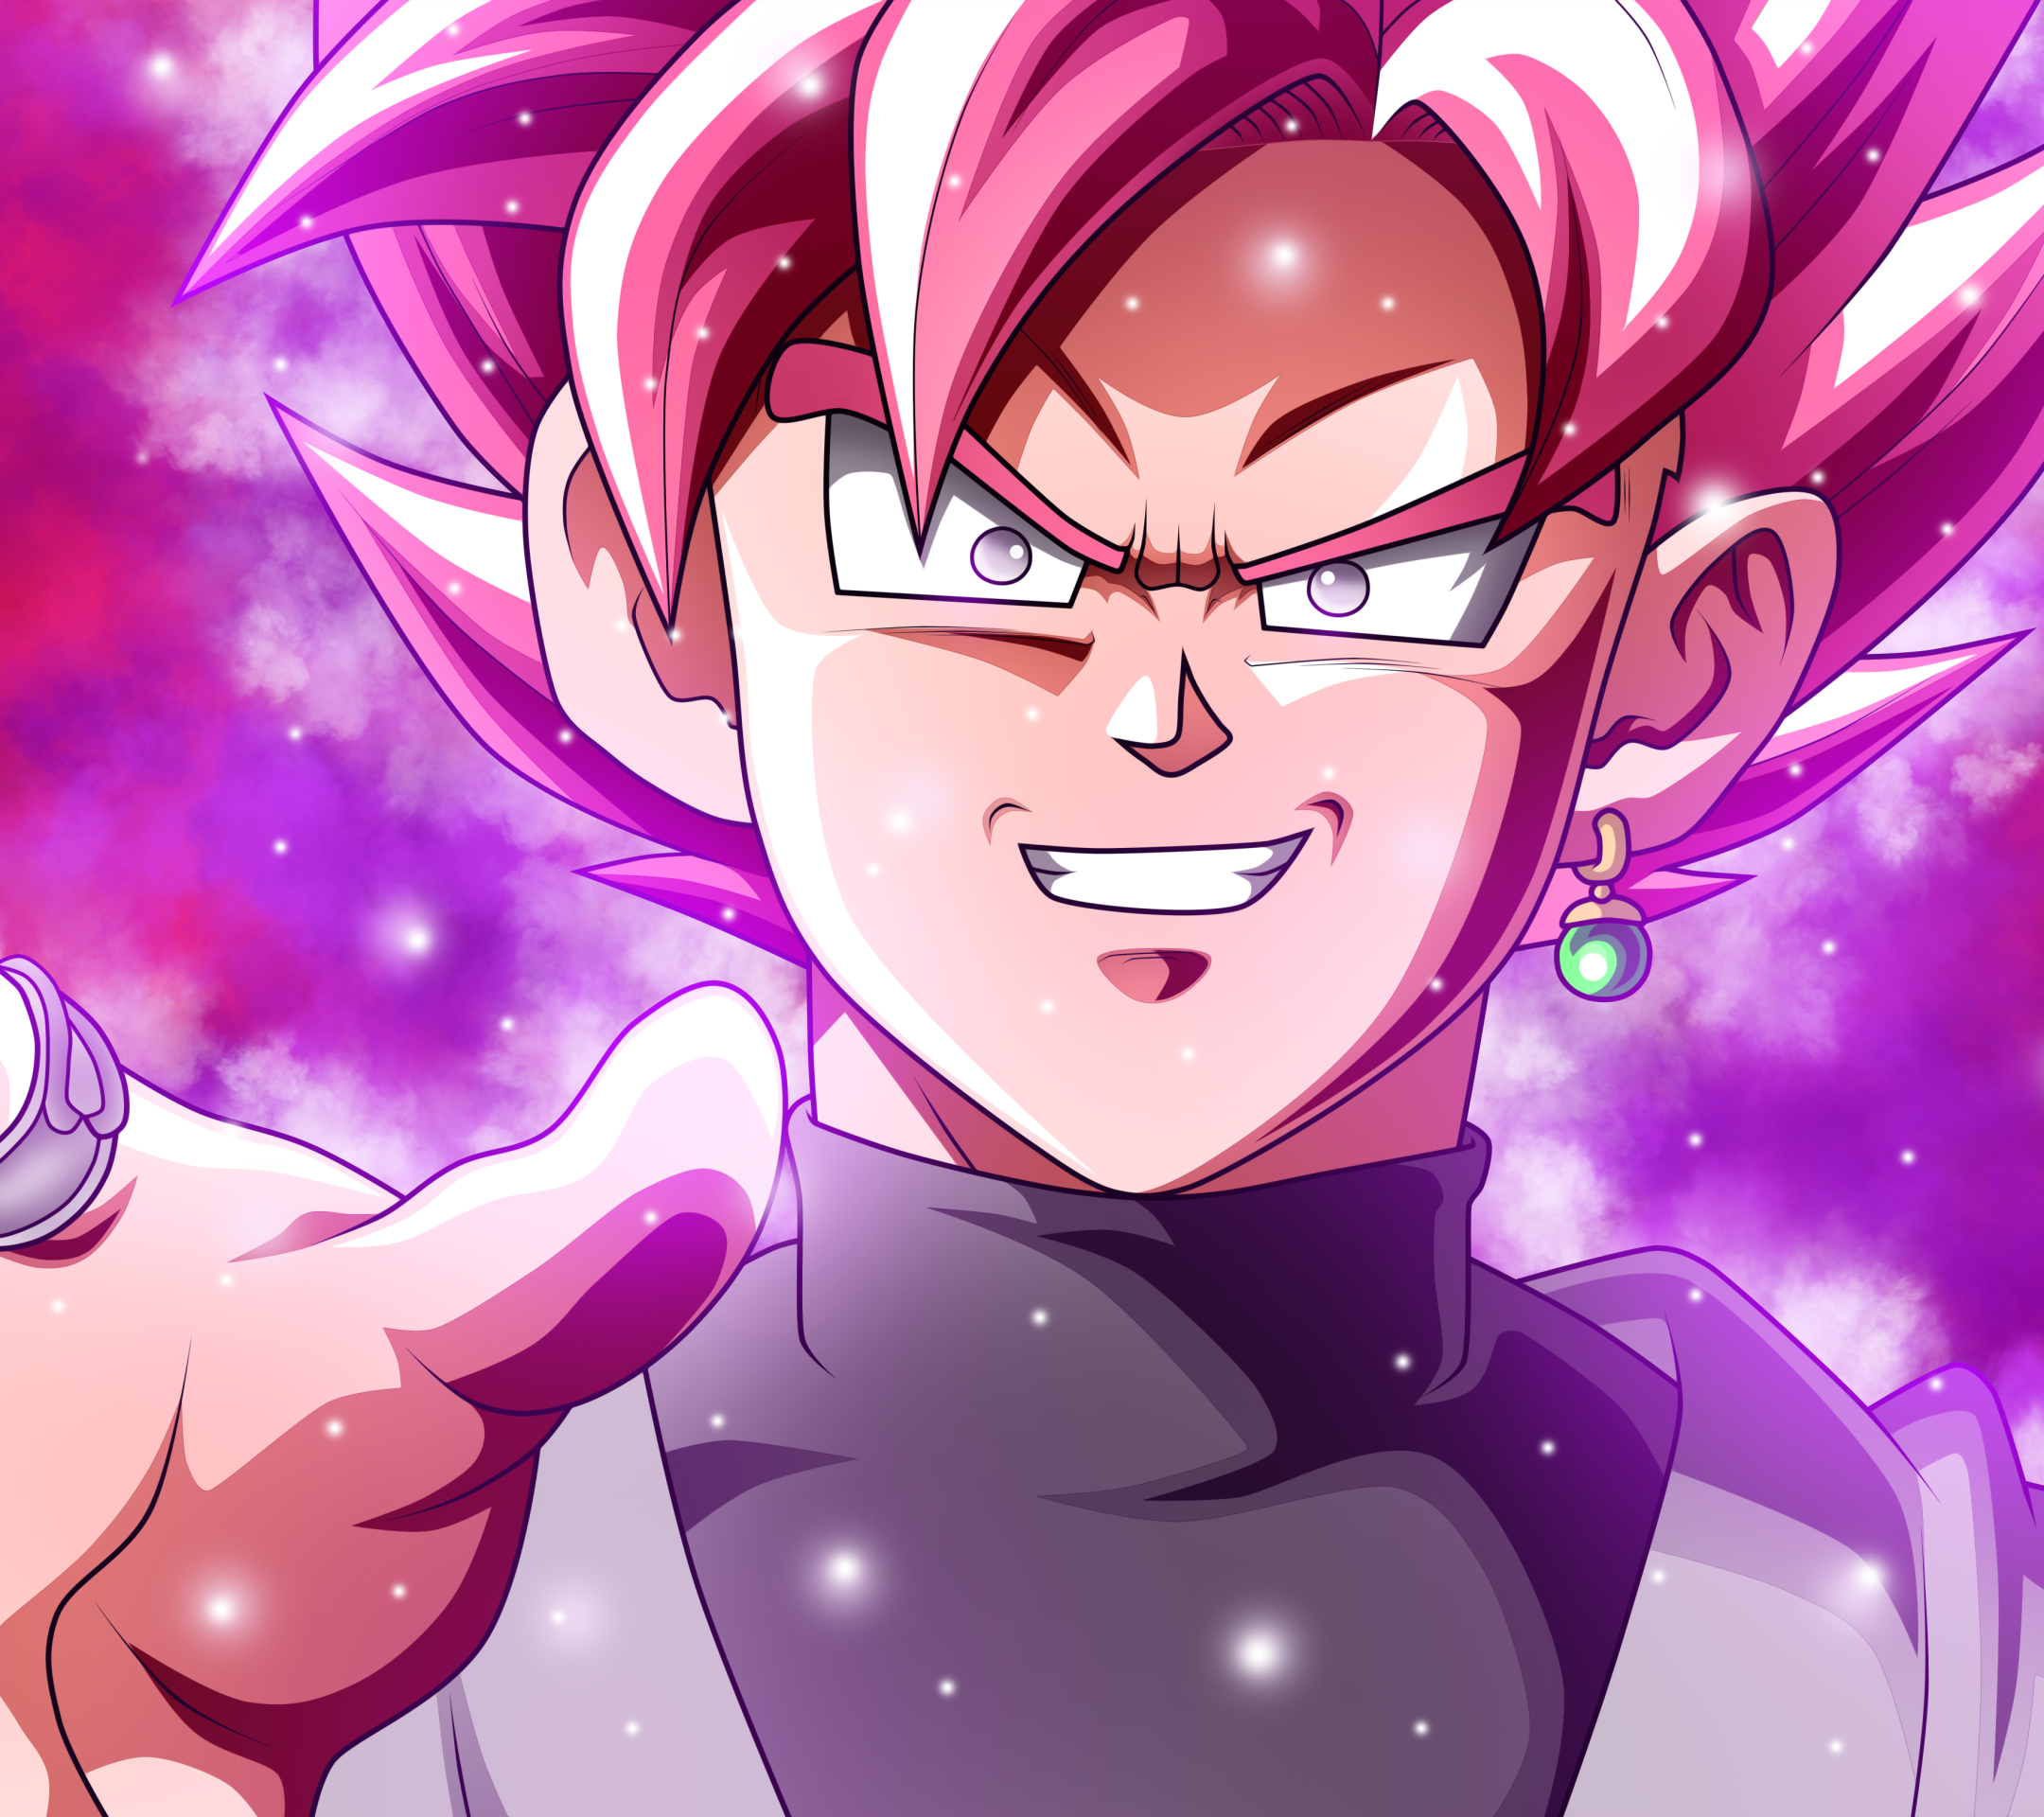 Download This Wallpaper Anime Dragon Ball Super 2160x19 For All Your Phones And Tablets Anime Dragon Ball Super Dragon Ball Super Wallpapers Goku Black